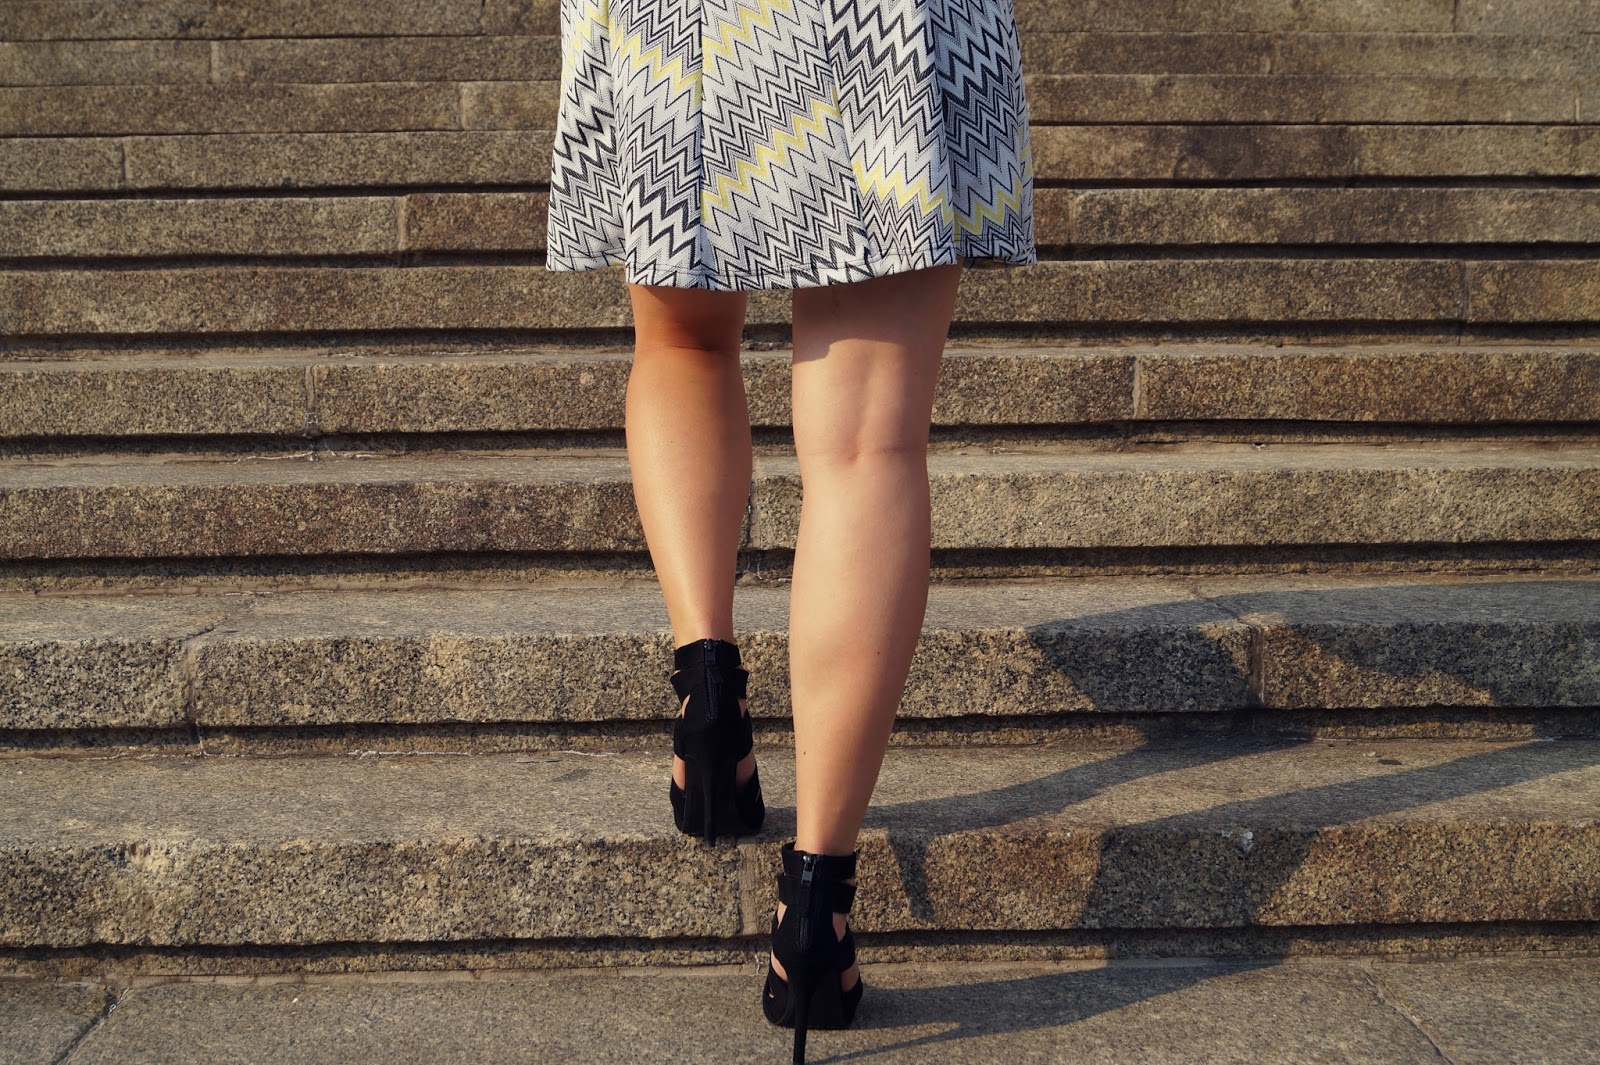 42. Zigzag dress